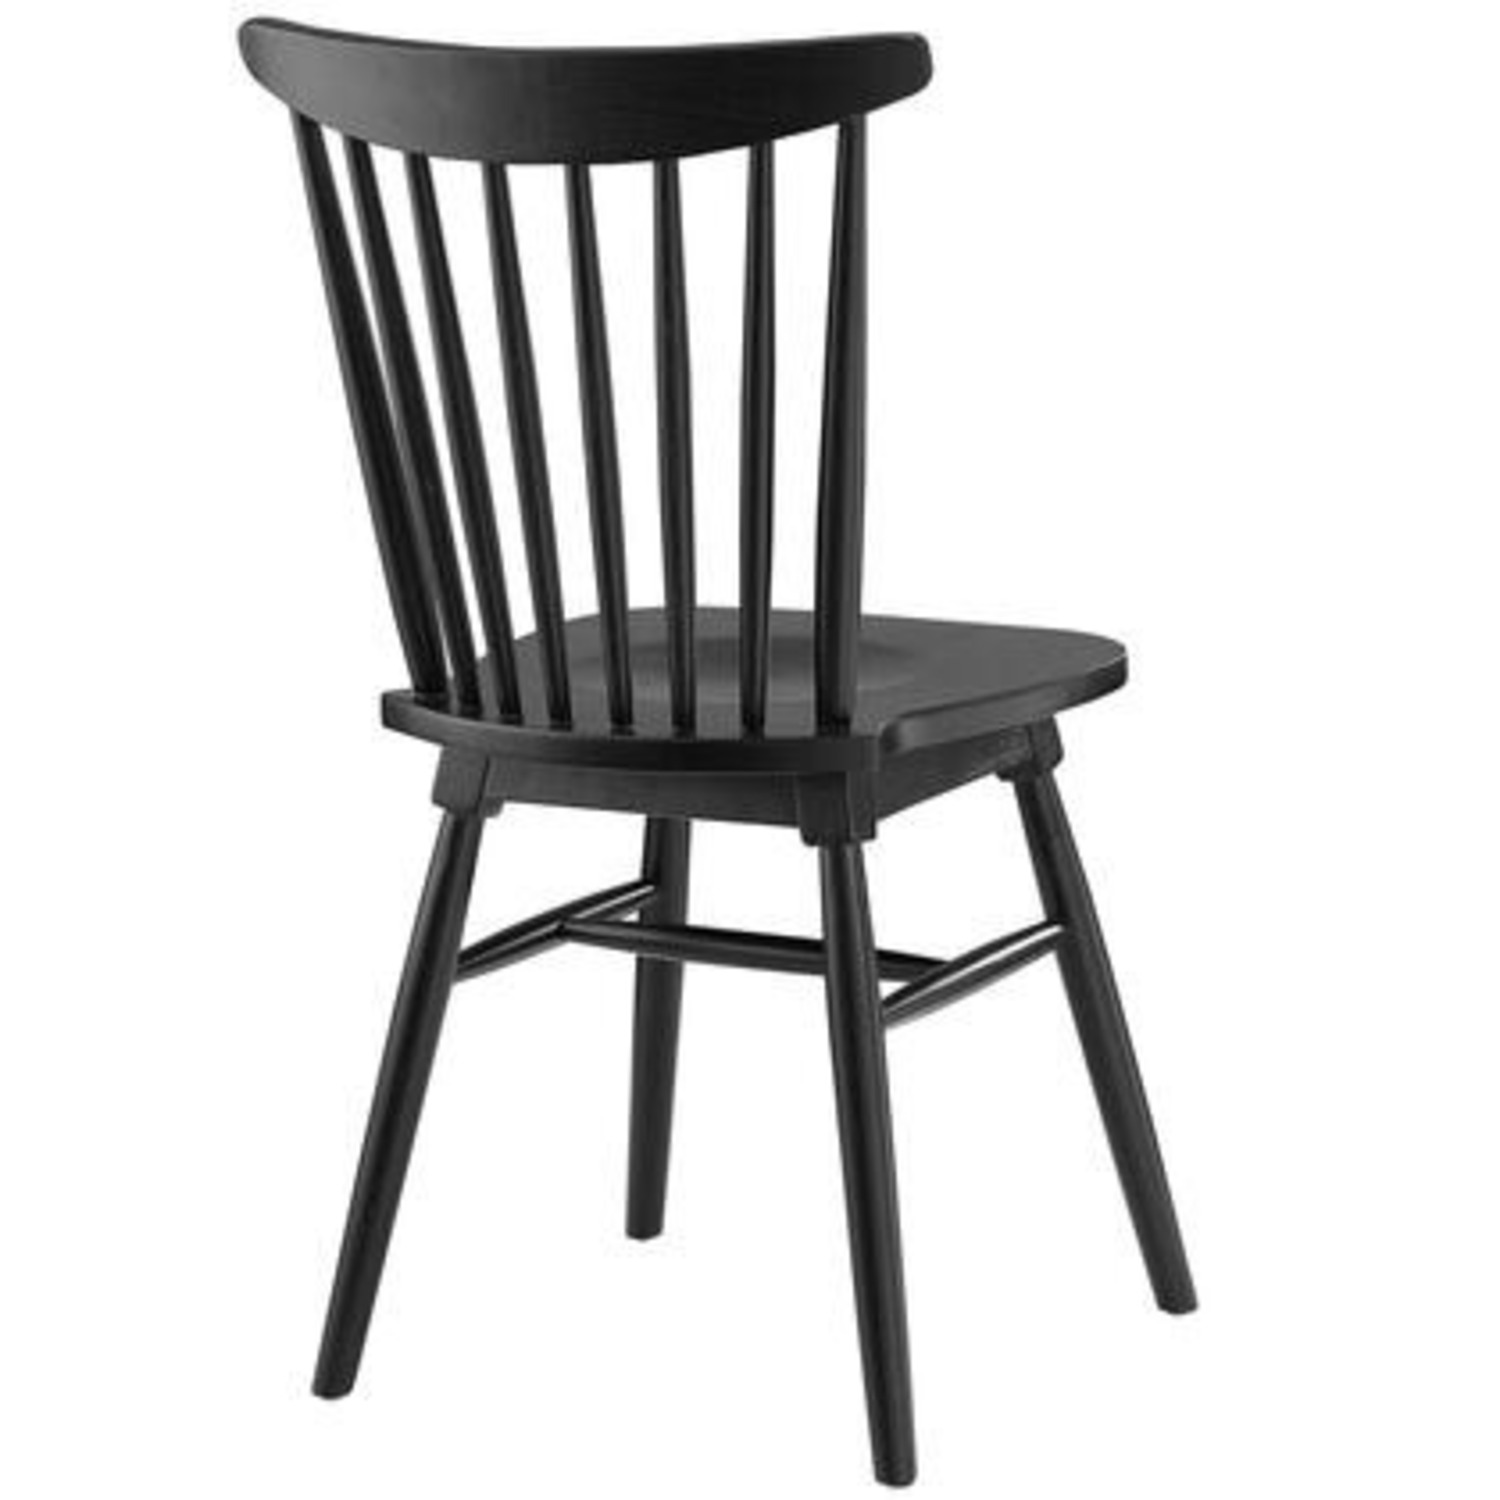 Contemporary Dining Chair In Black Elm Wood Finish - image-2